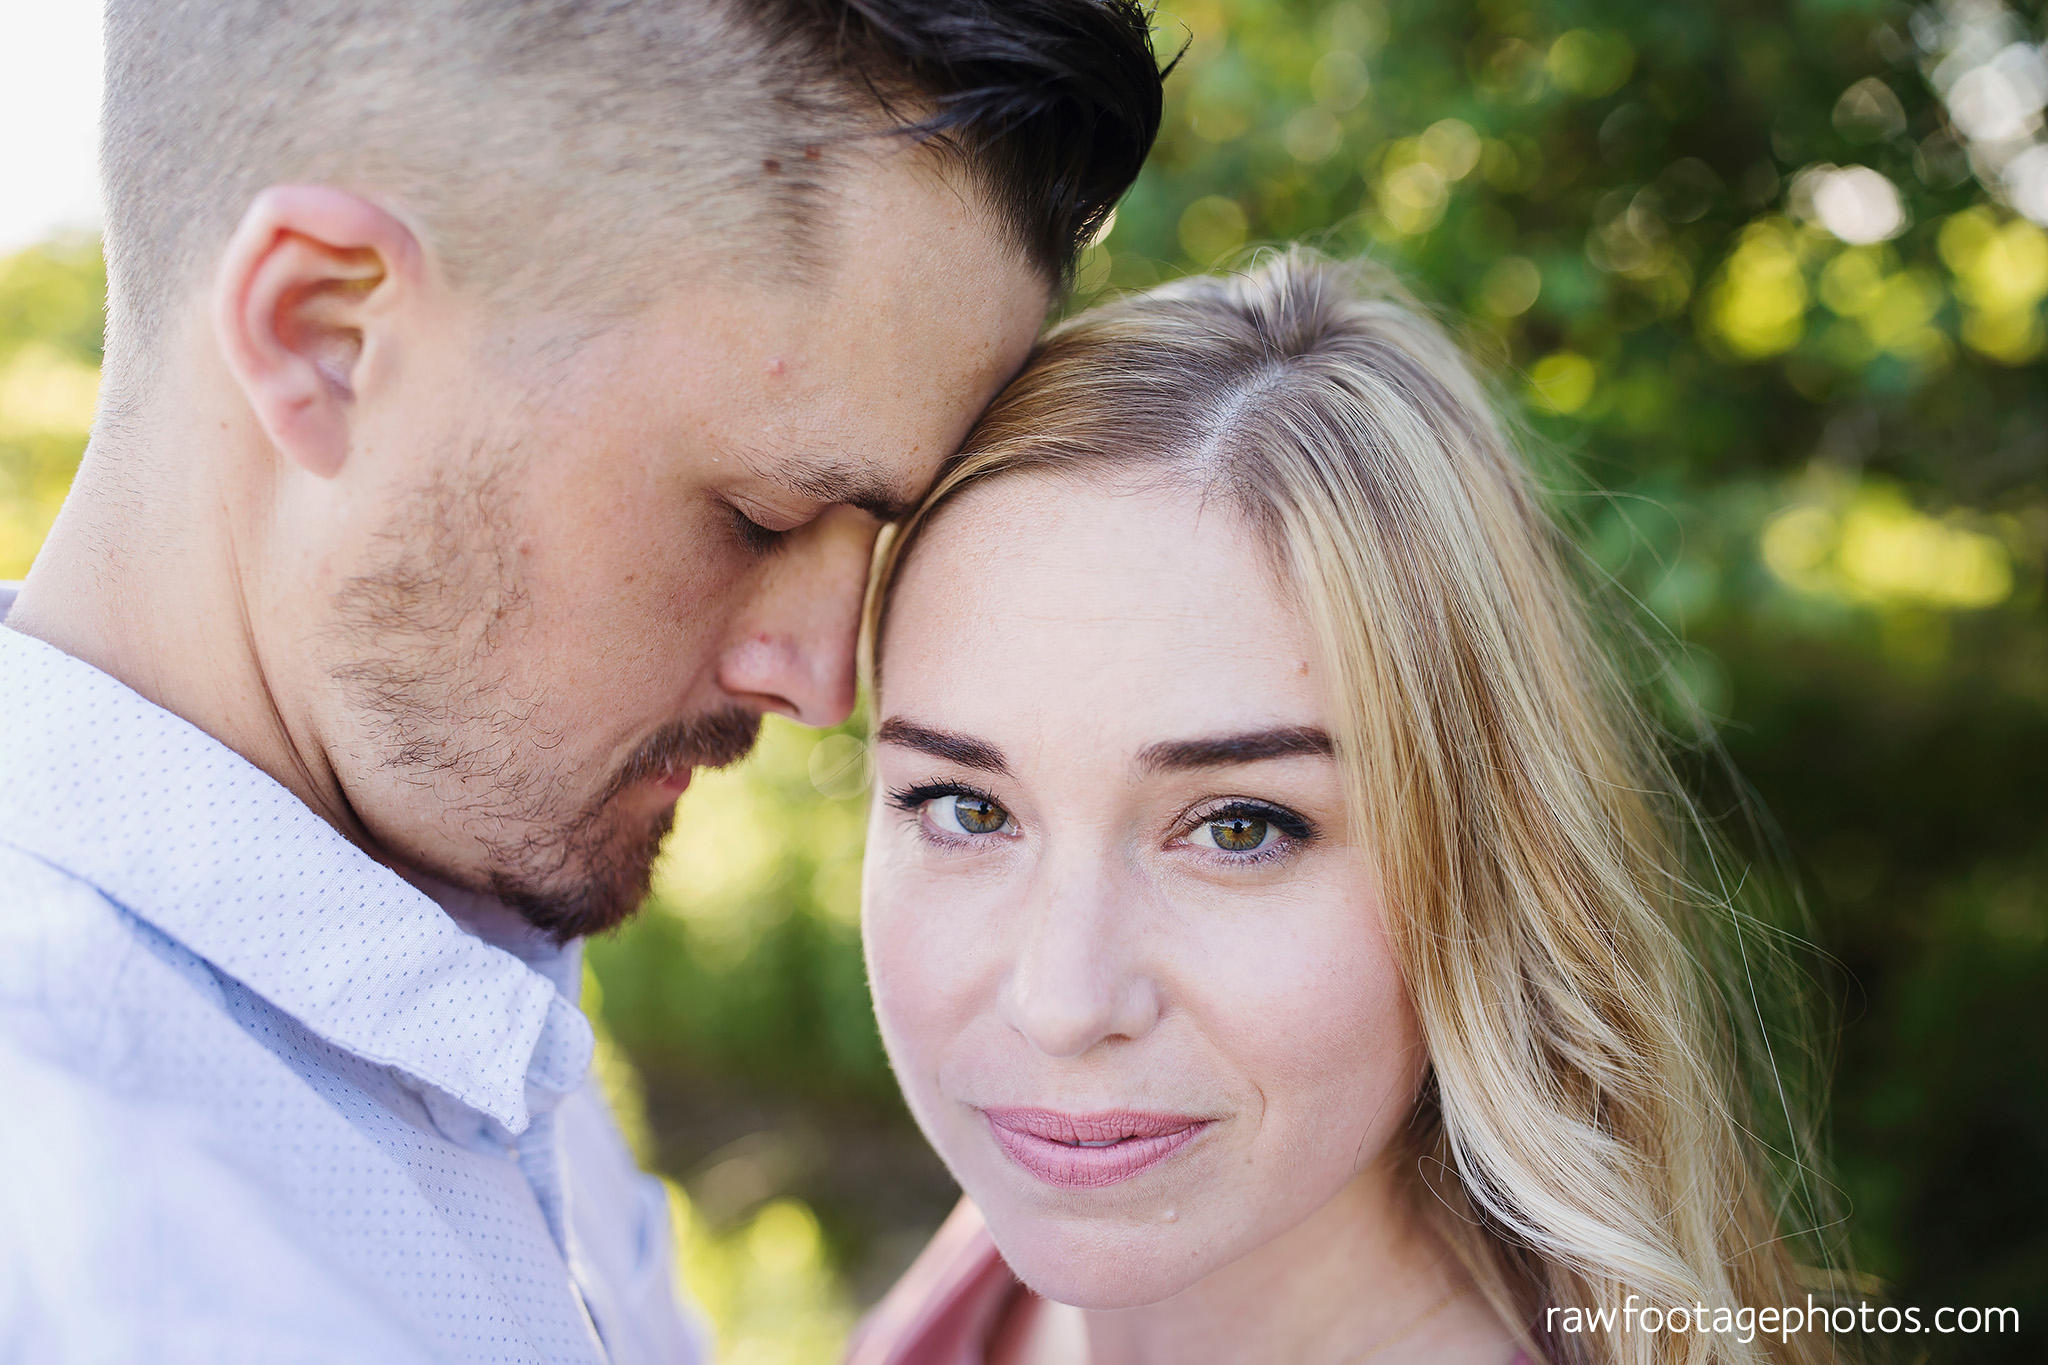 london_ontario_wedding_photographer-raw_footage_photography-mentoring-workshop-golden_hour-engagement_session003.jpg